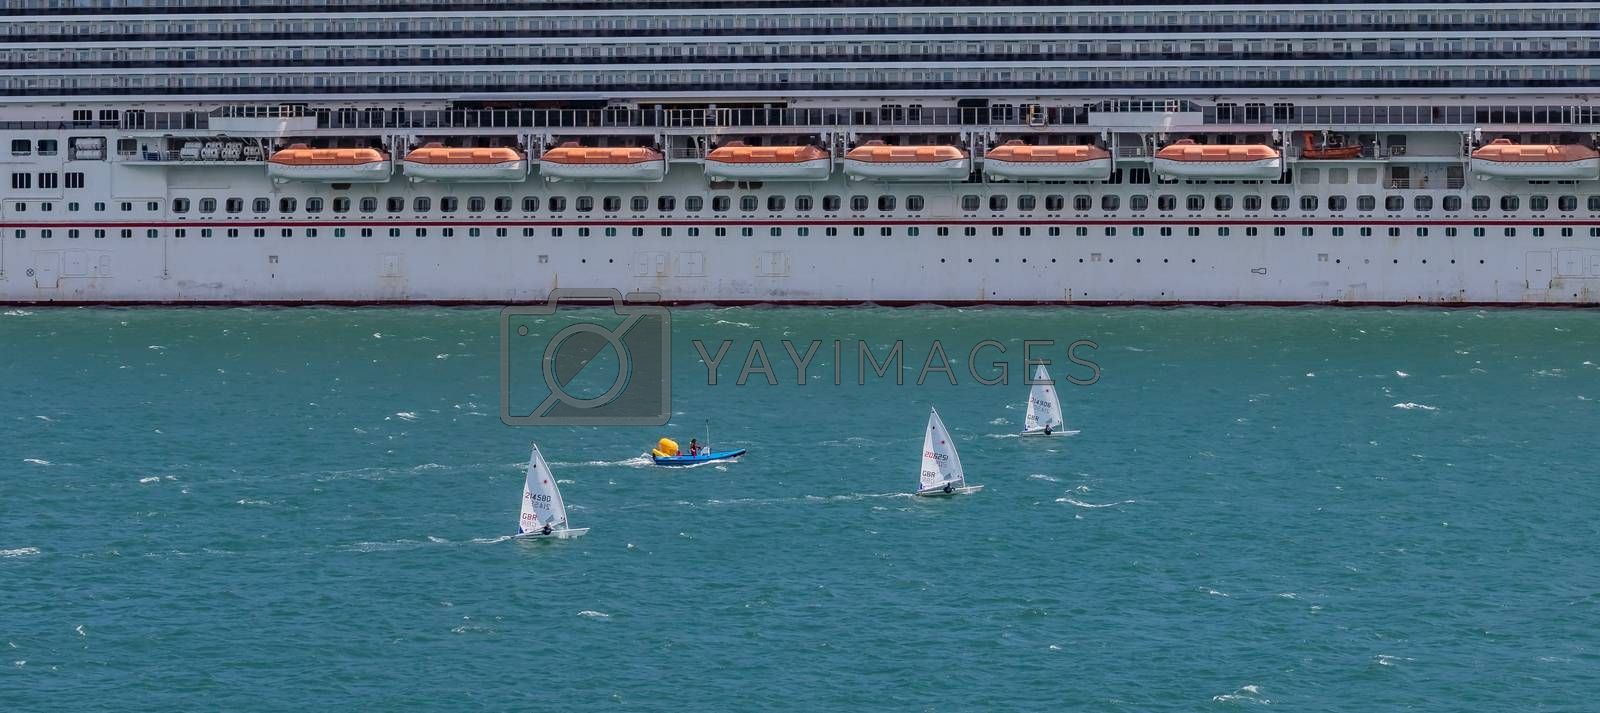 Portland harbour, United Kingdom - July 2, 2020: High Angle aerial panoramic shot of the laser class sailing racing dinghies and a rescue boat sailing by a huge cruise ship in Portland harbour.